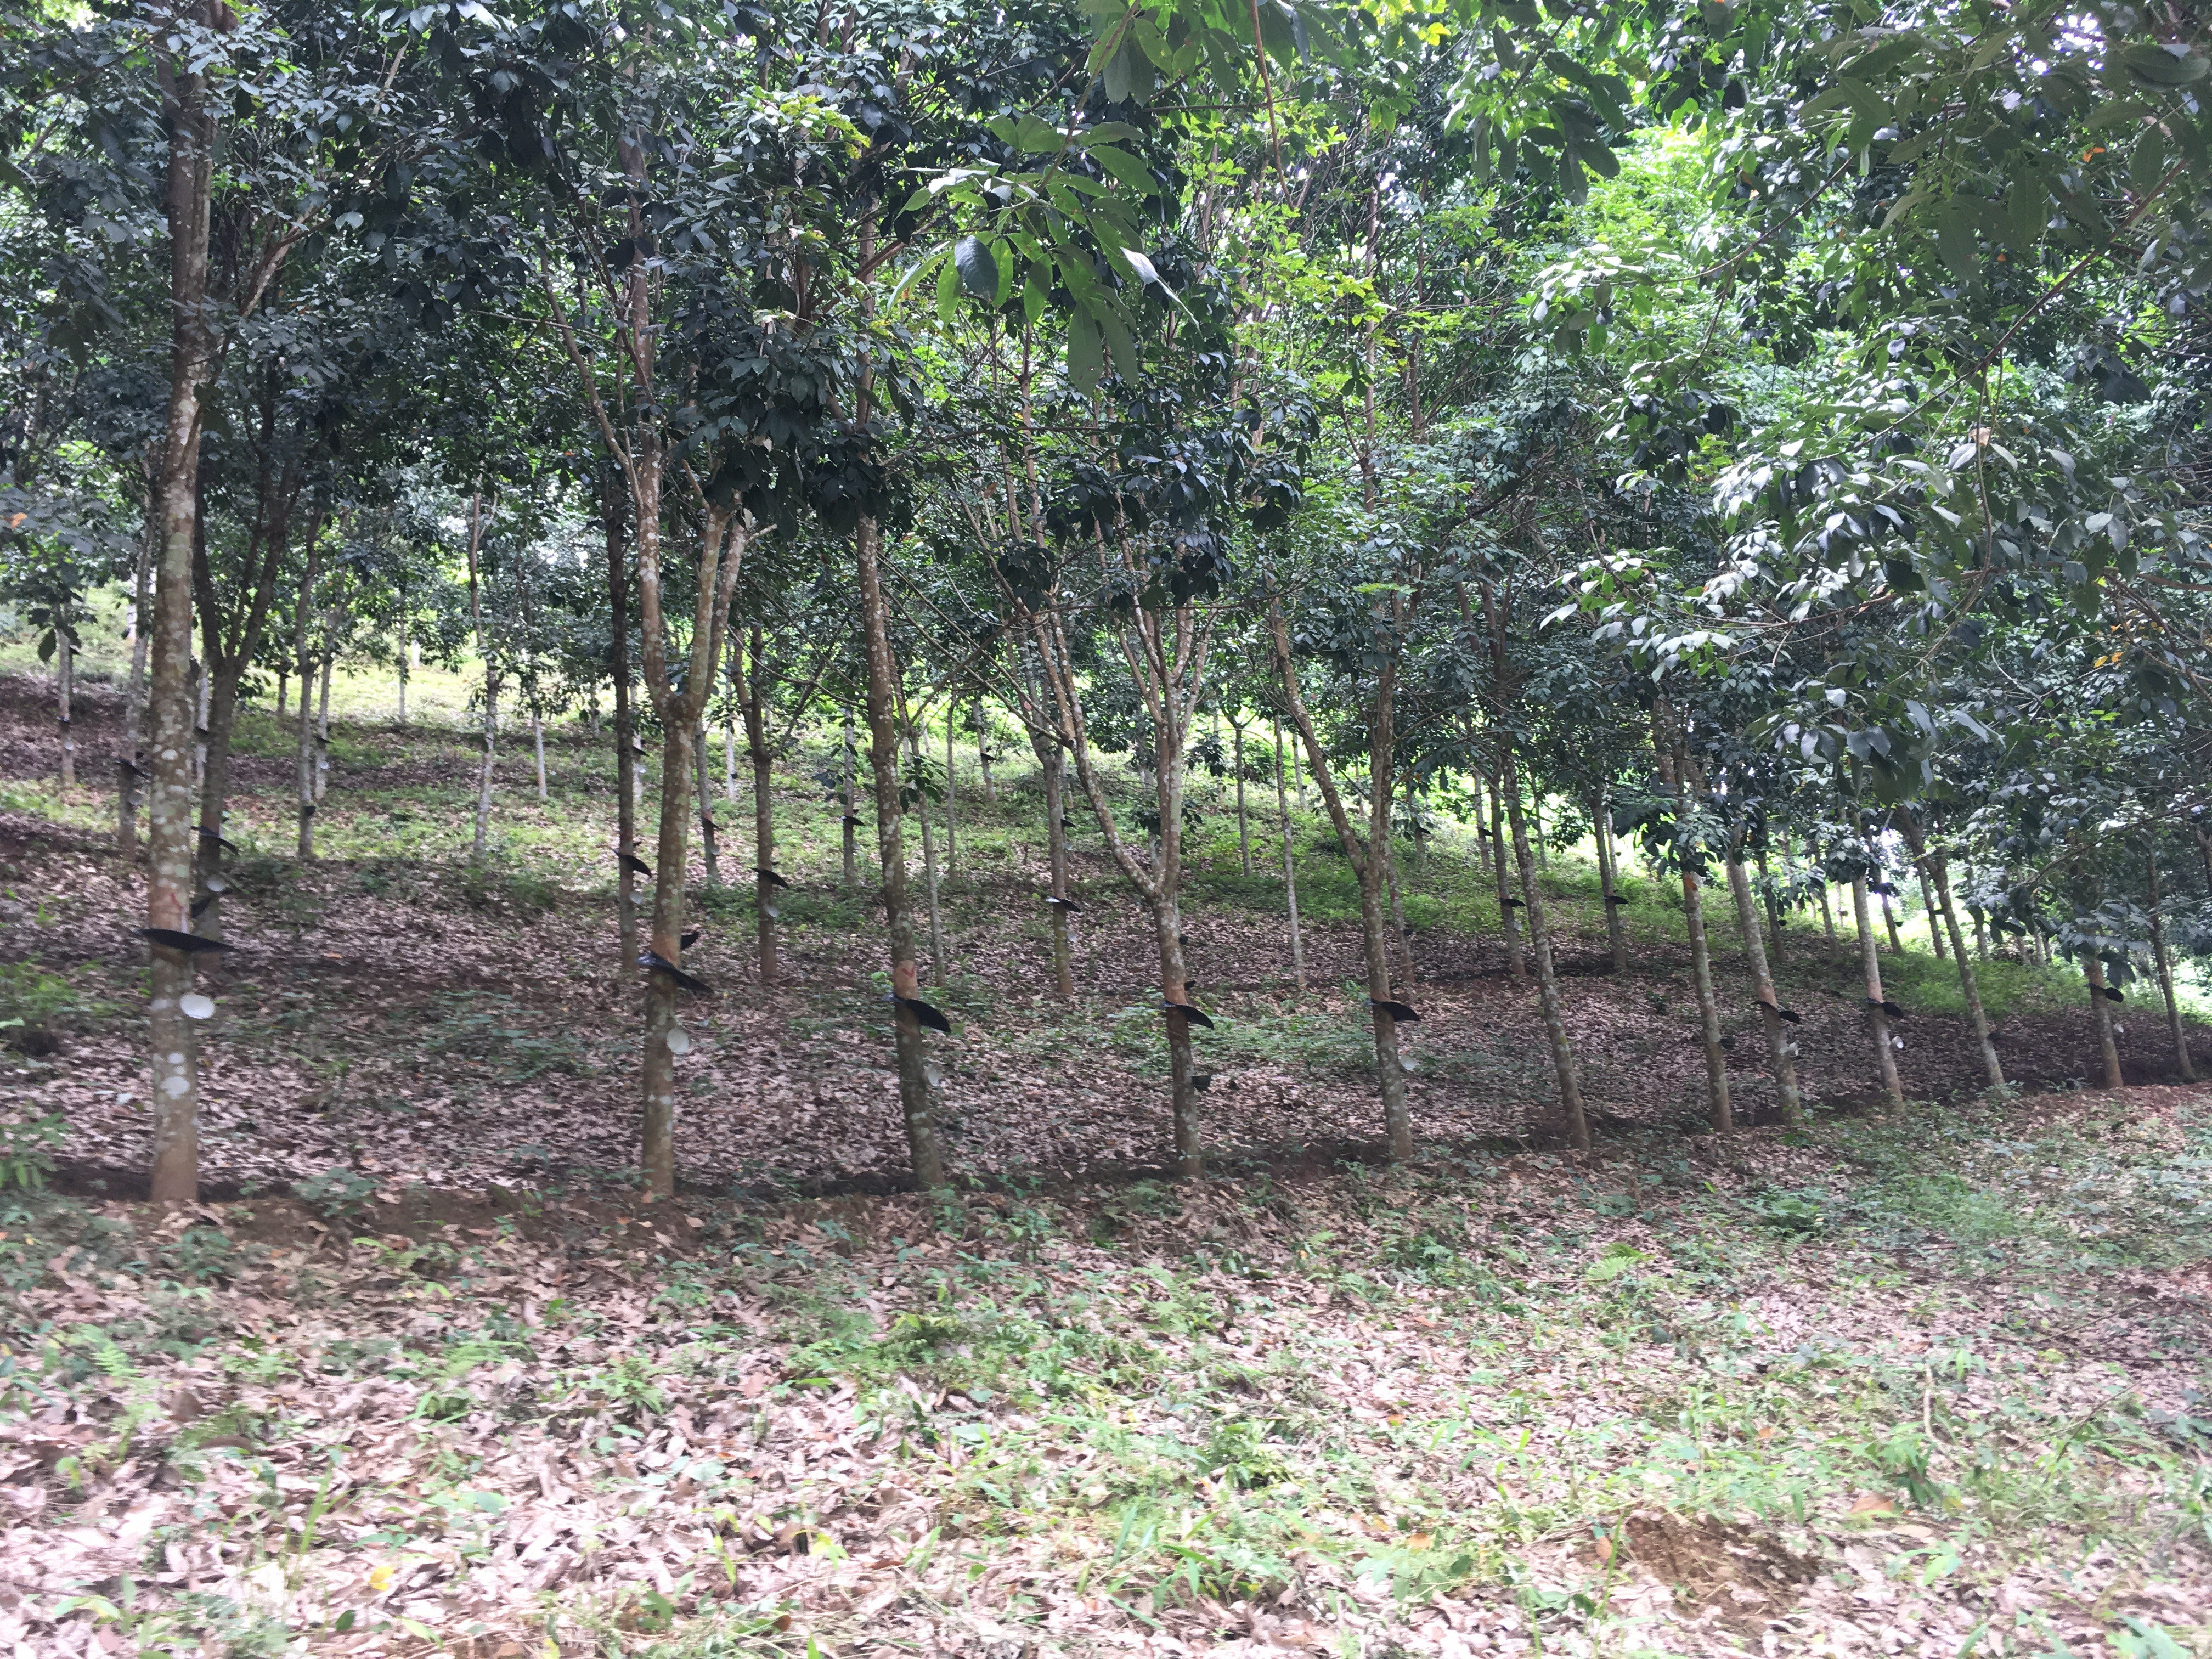 Forest of rubber trees